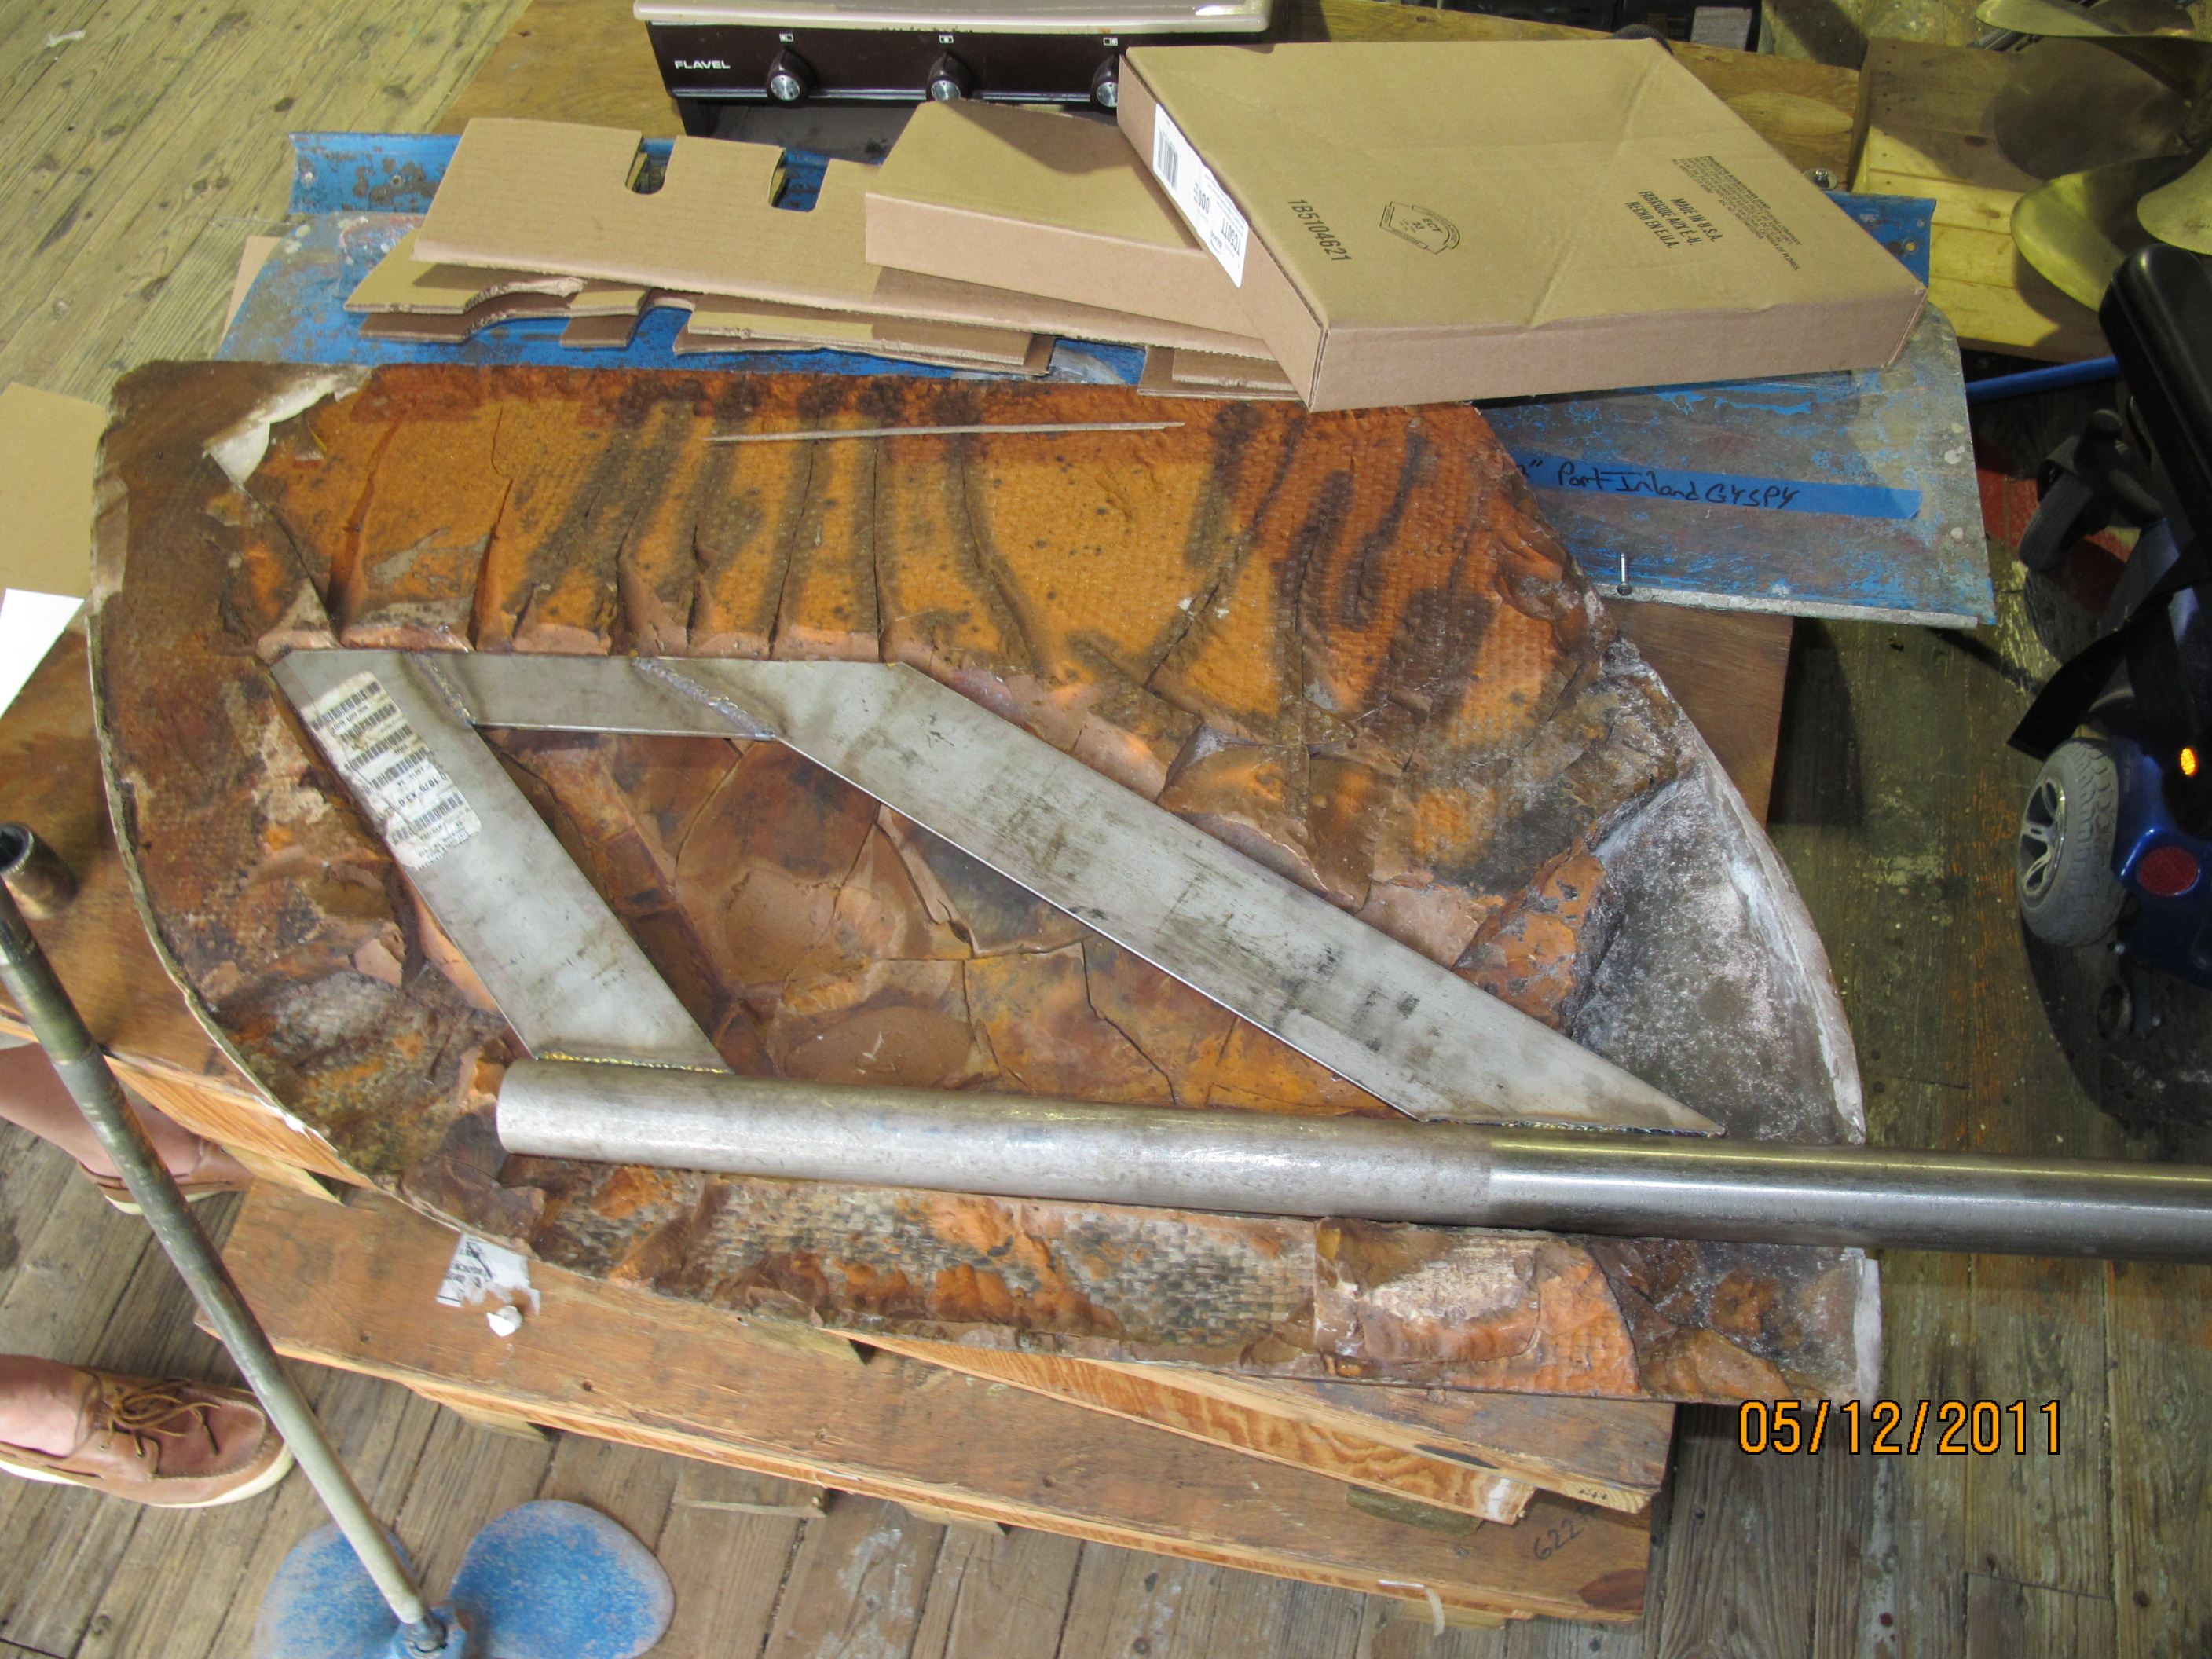 Rudder With Broken Welds